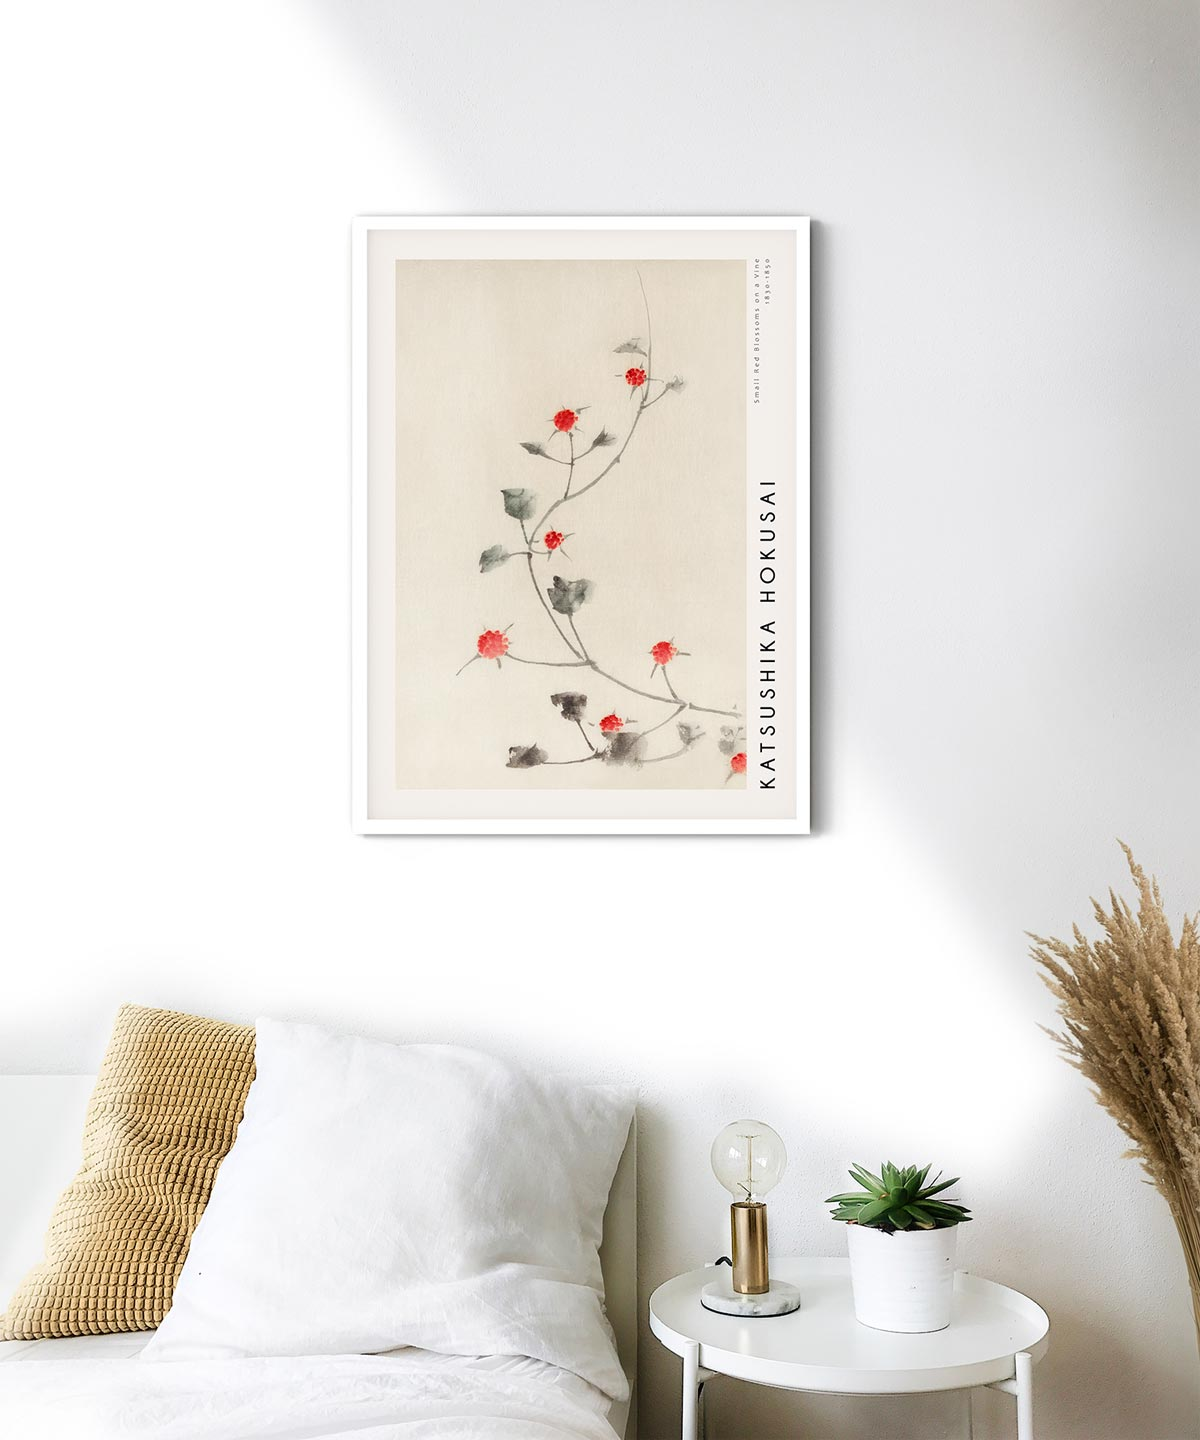 Hokusai-Small-Red-Blossoms-on-a-Vine-Poster--White-Framed-on-Wall-Duwart